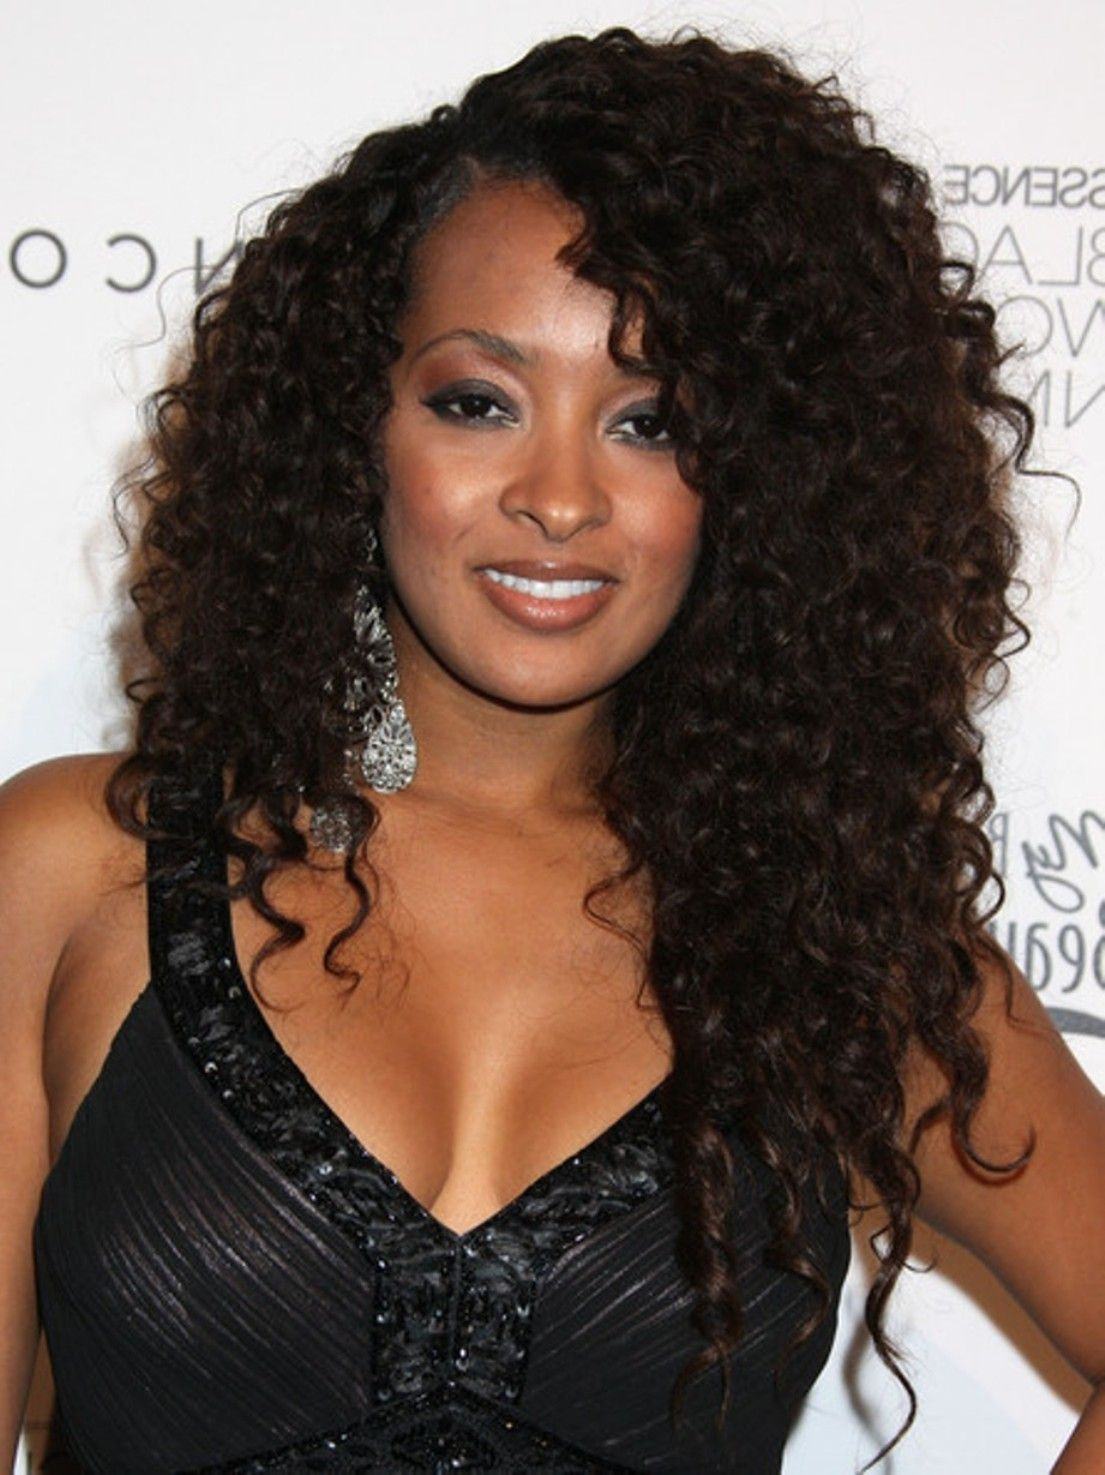 Curly Hairstyles For Black Women Jpg 1105